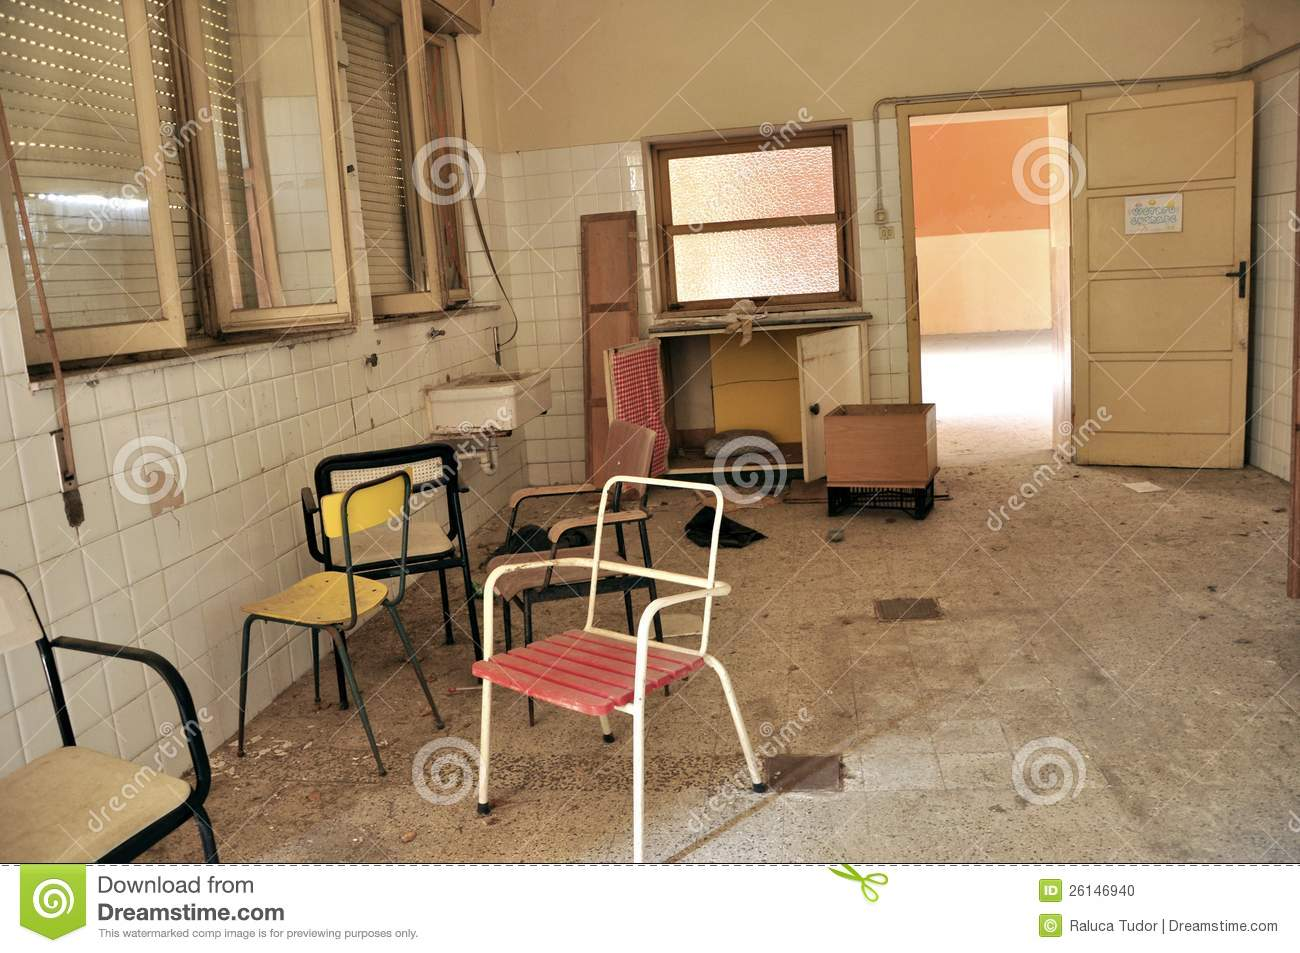 Abandoned Hospital Room In Italy Stock Photo Image 26146940